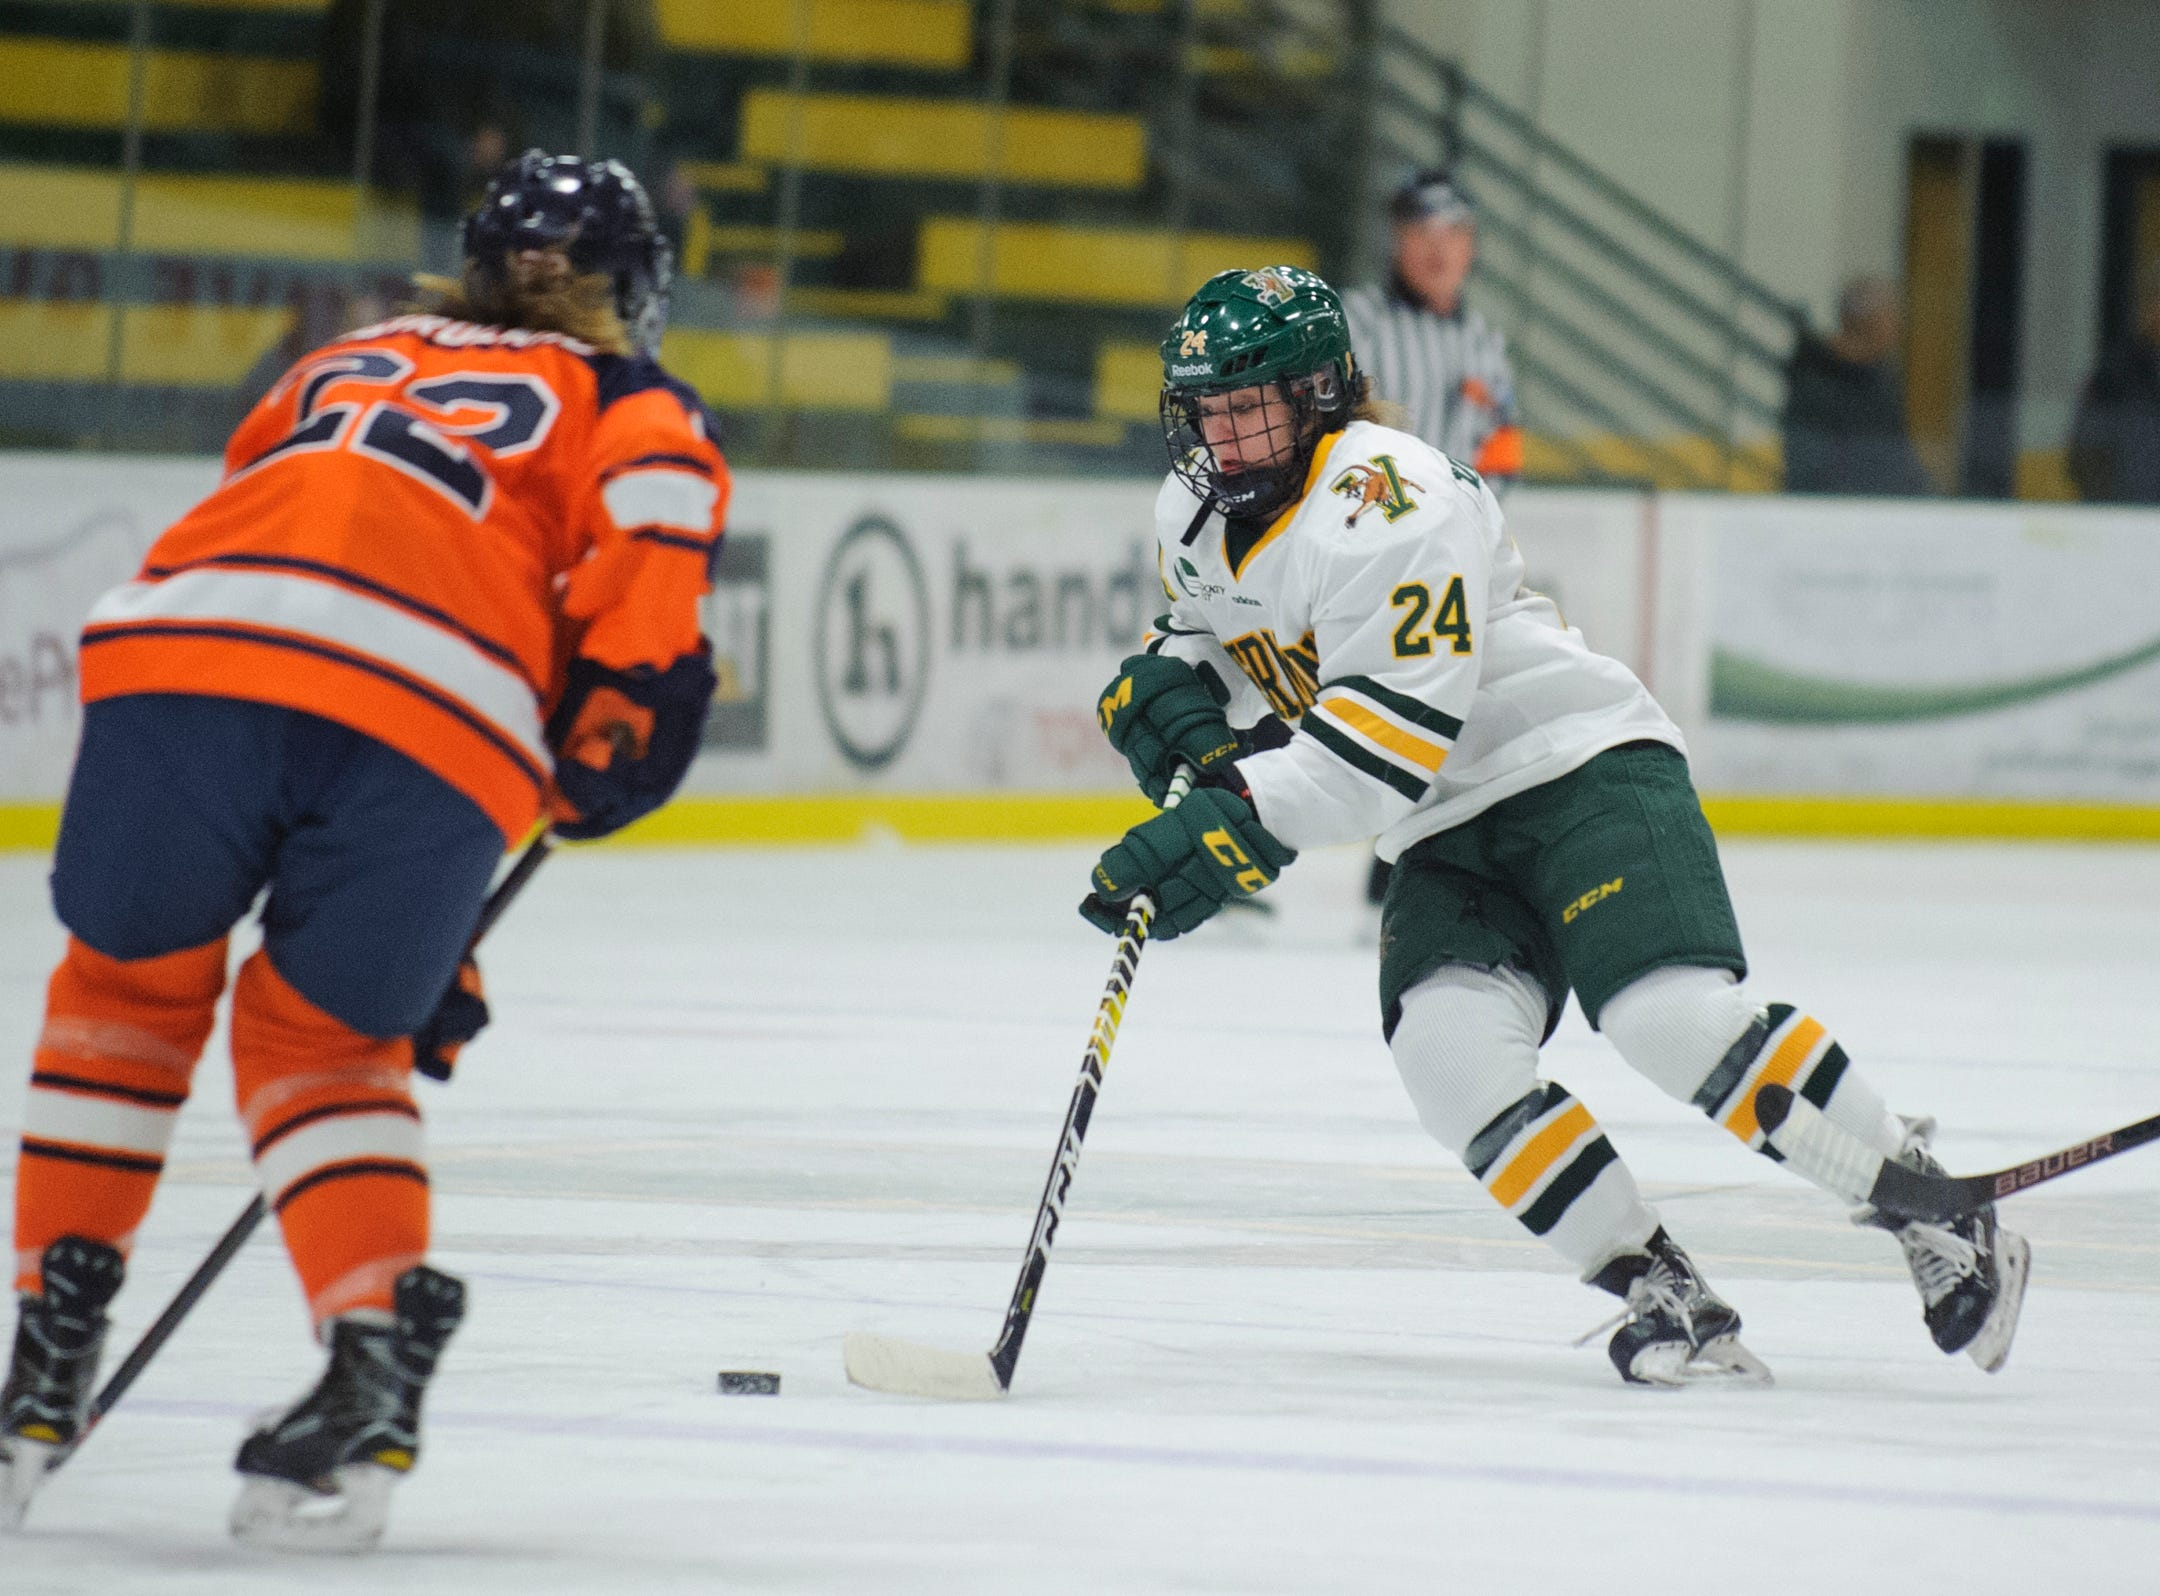 Vermont's Saana Volkama (24) skates with the puck during the women's hockey game between the Syracuse Orange and the Vermont Catamounts at Gutterson Field House on Friday night November 23, 2018 in Burlington.